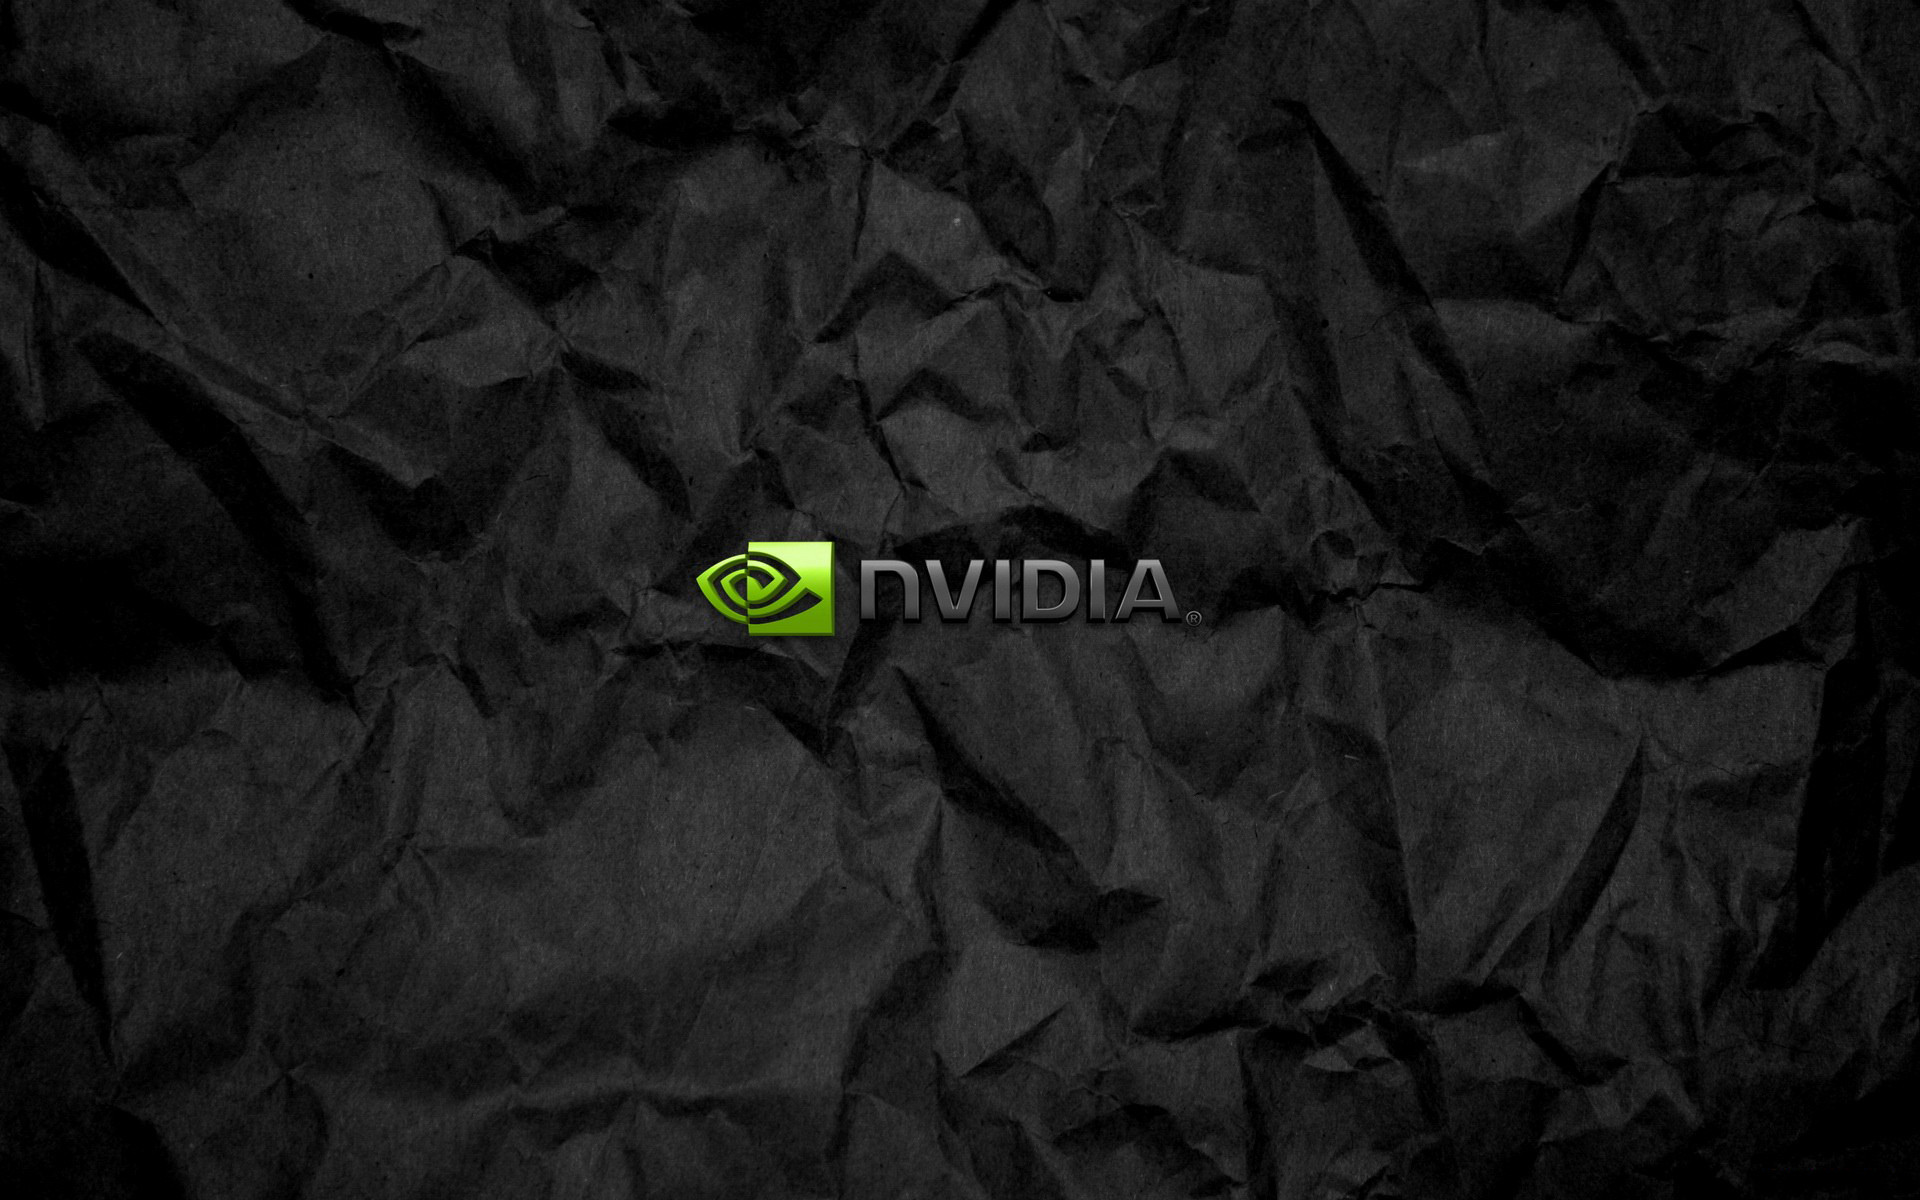 Nvidia Widescreen Background